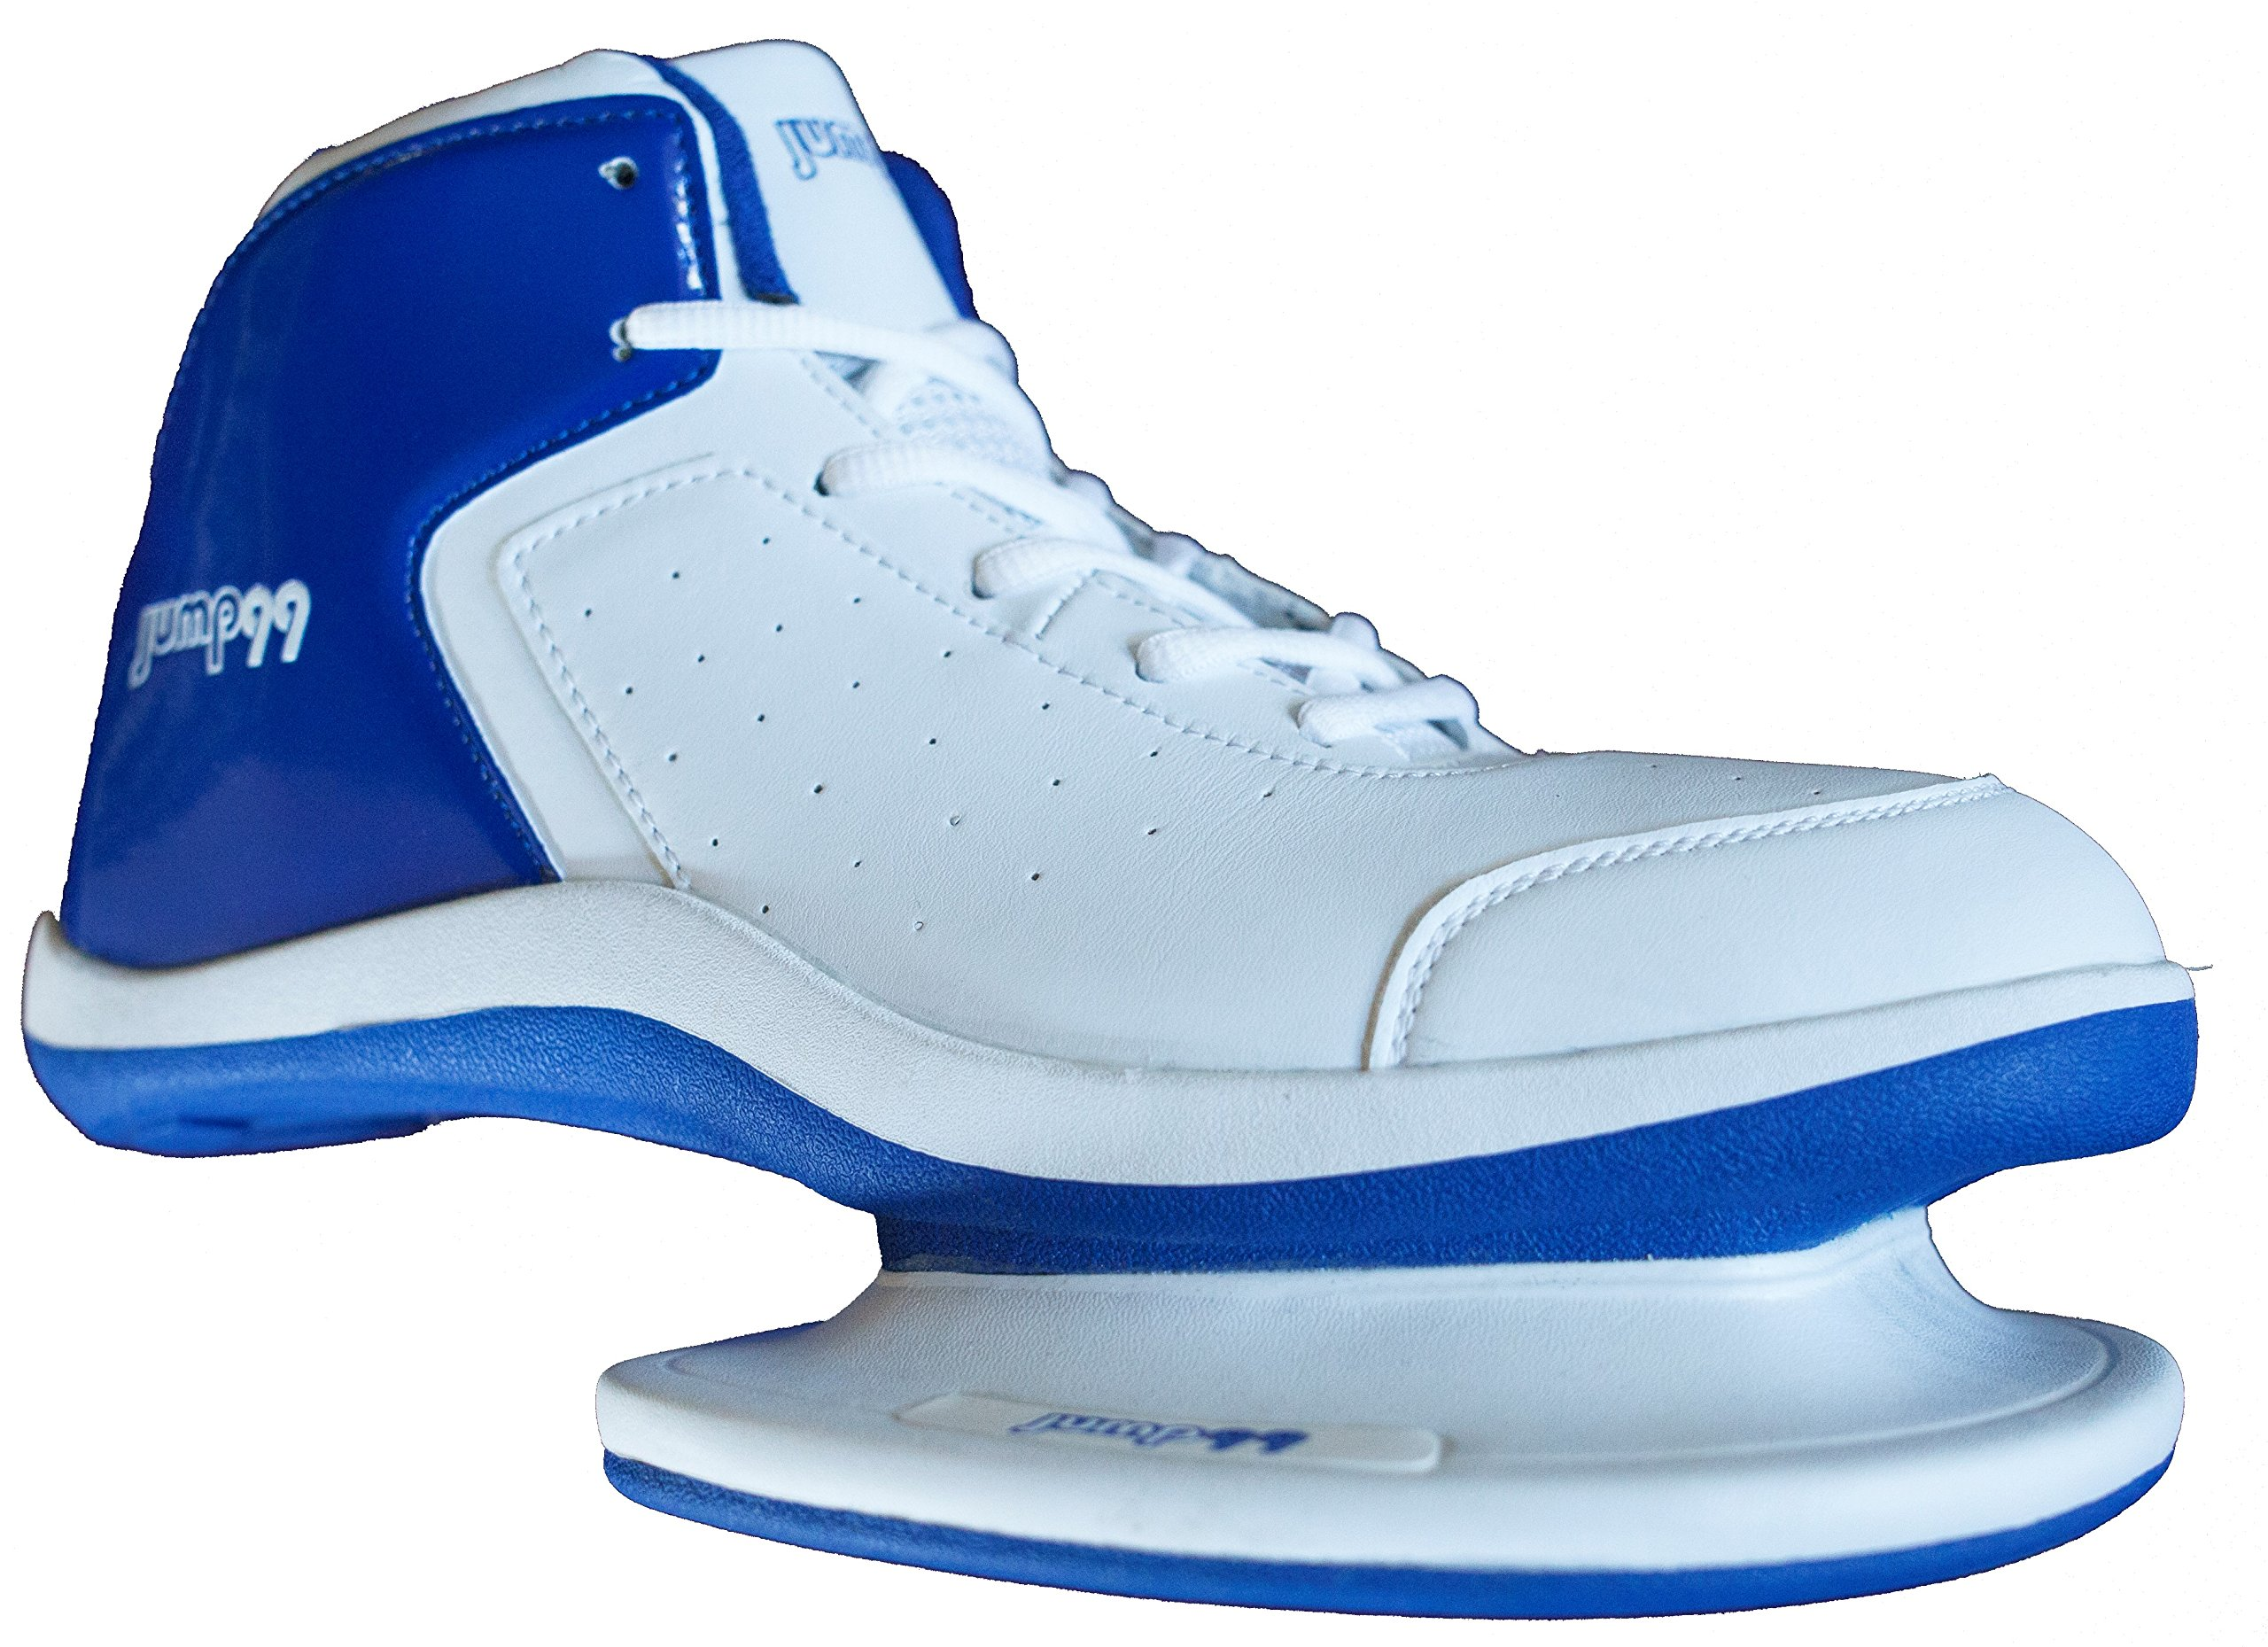 Jump99 Strength Plyometric Shoes (6.5) by Jump99 (Image #1)